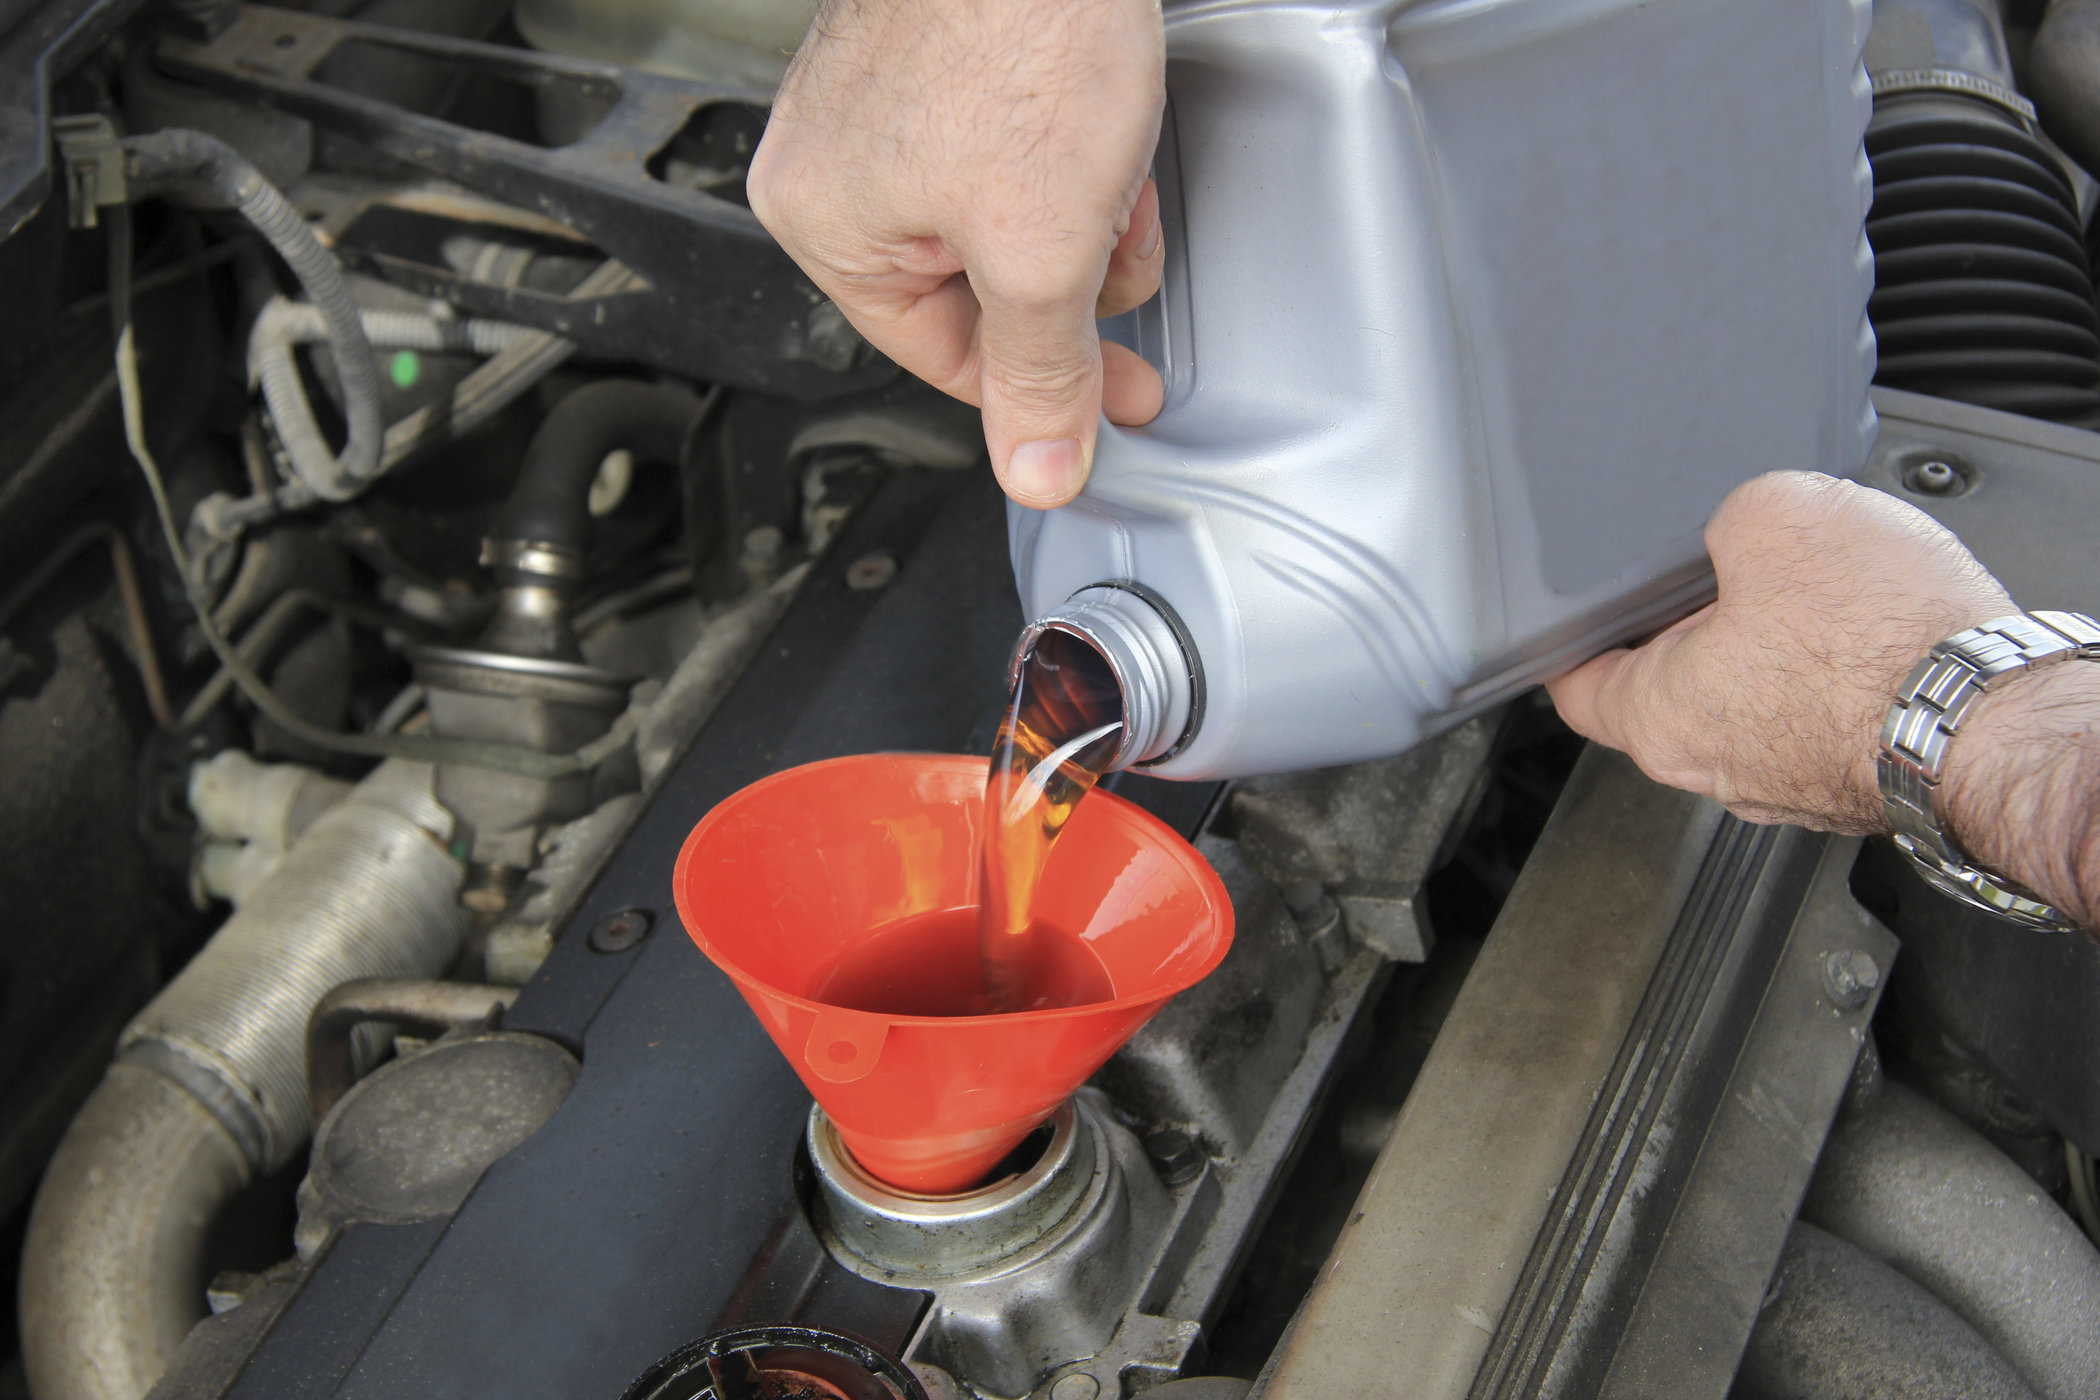 Refilling engine oil of an older car